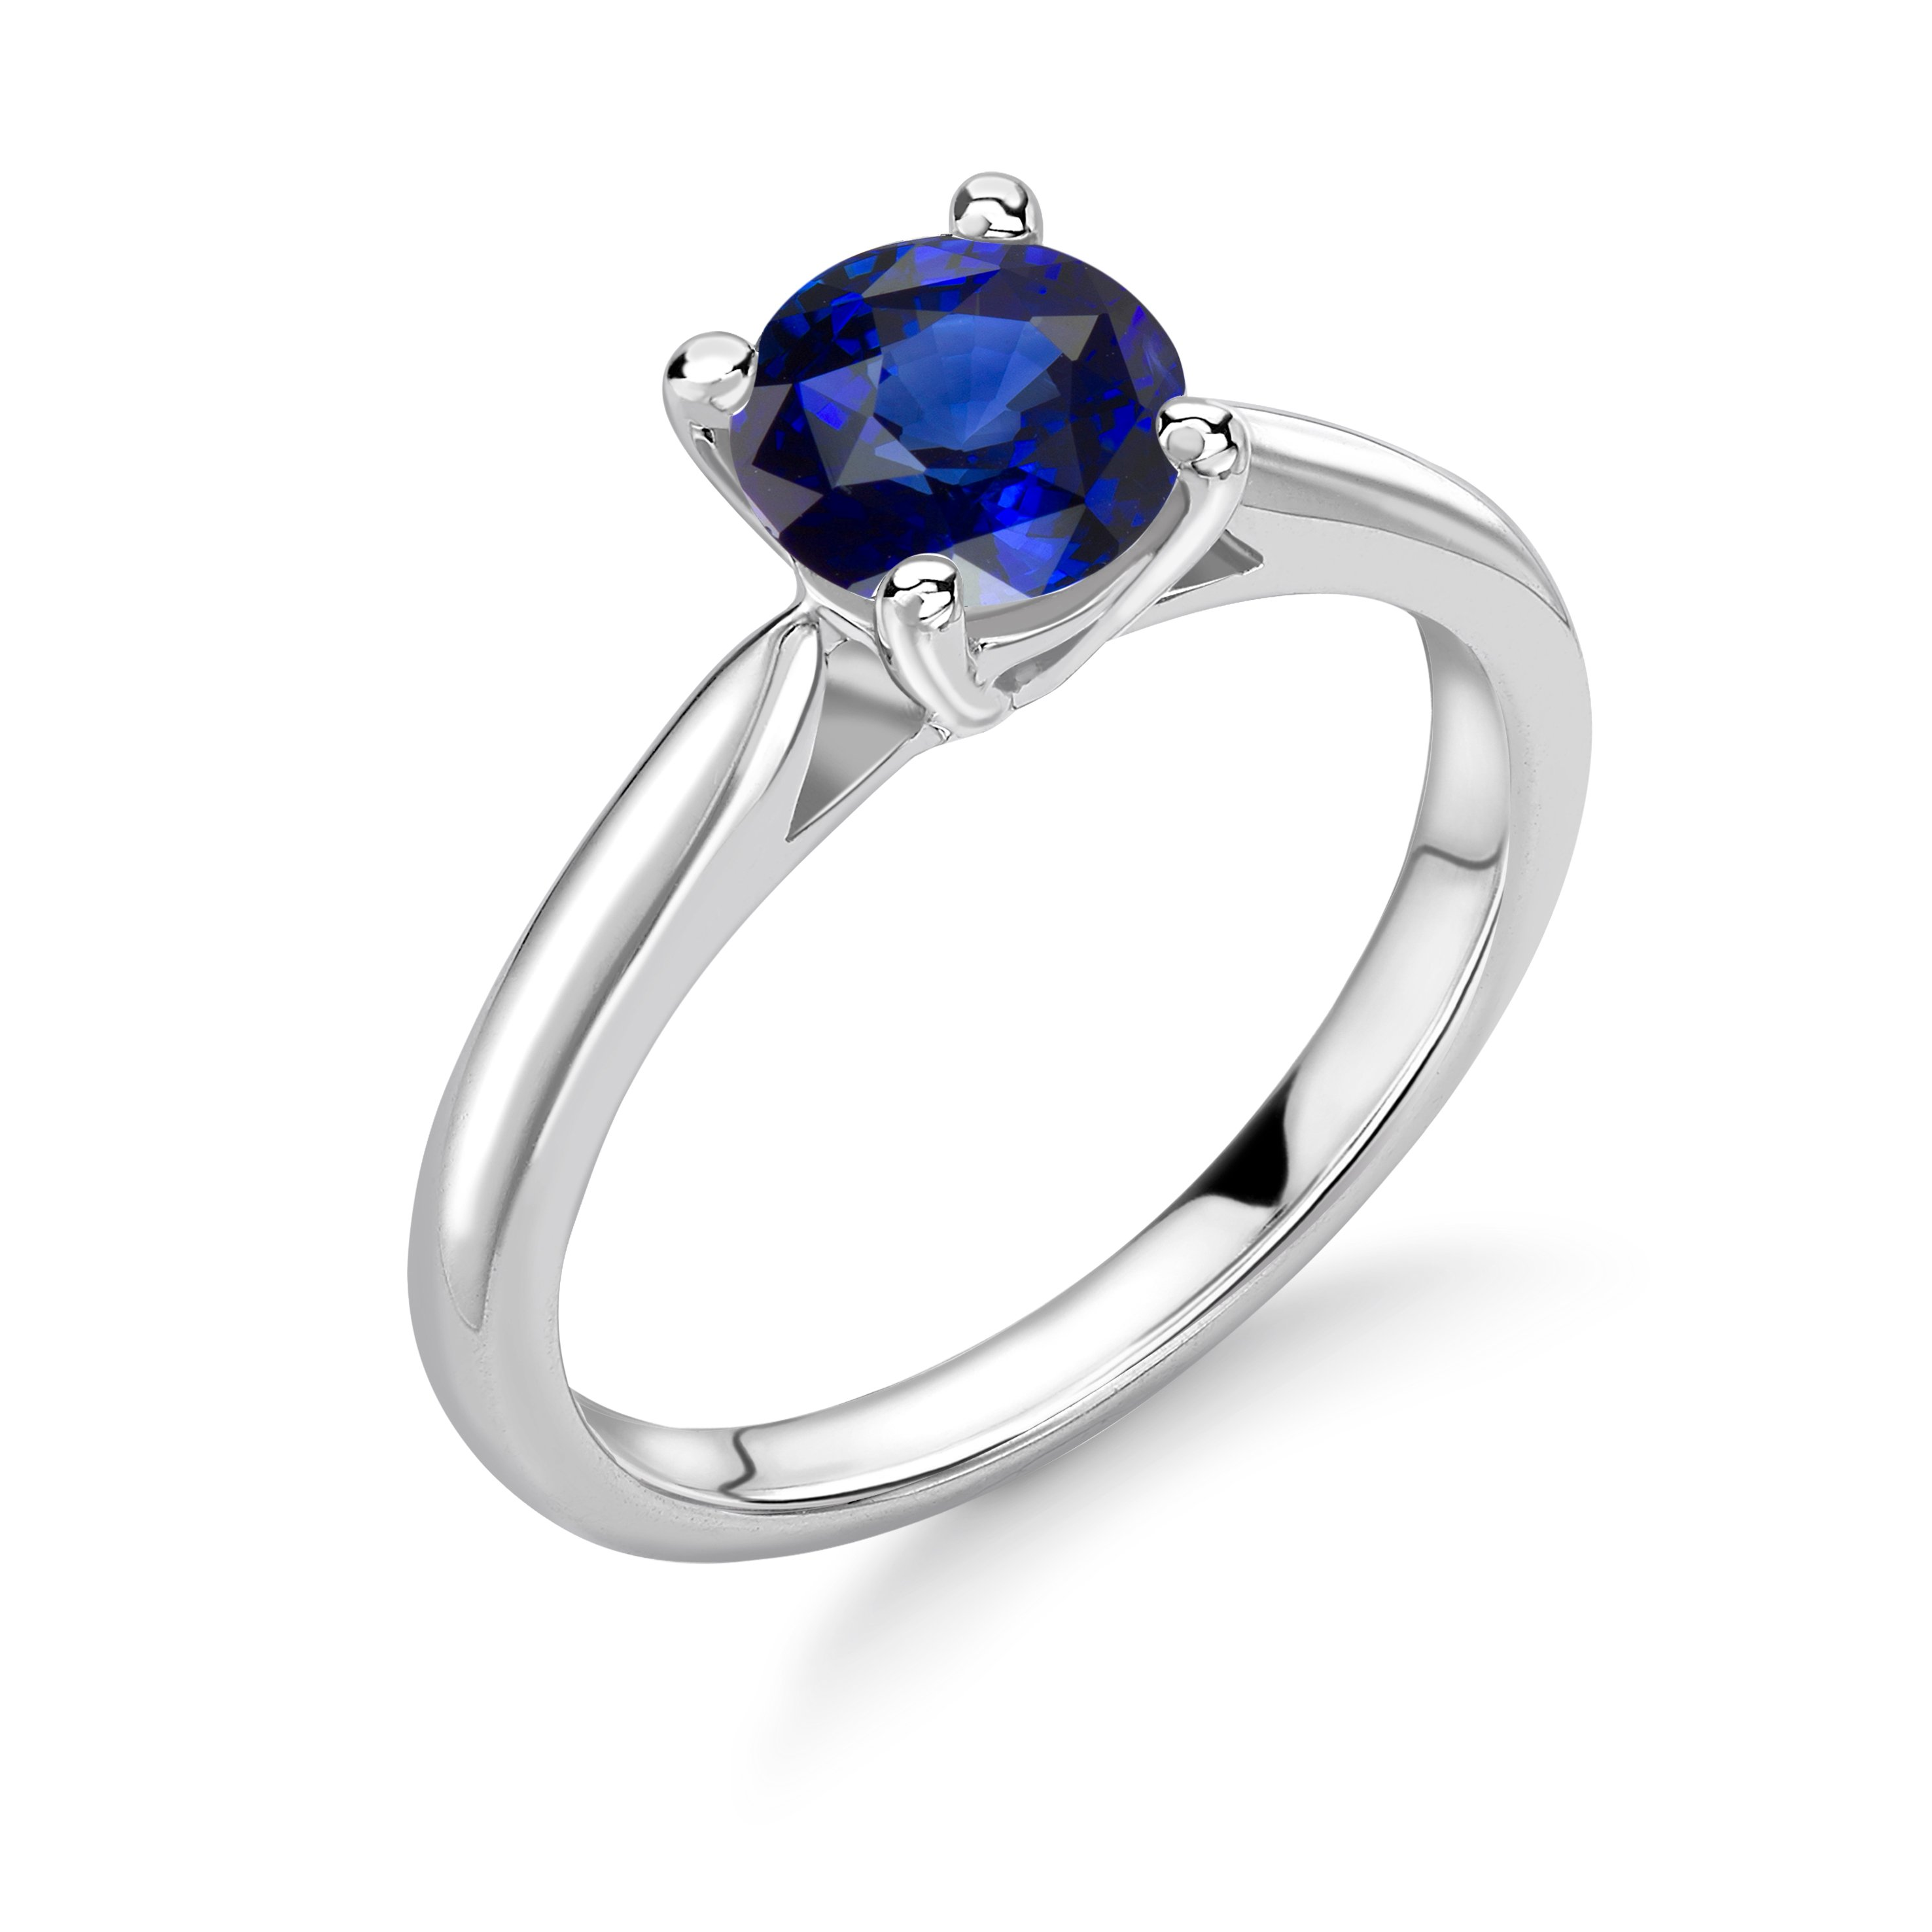 Classci Design 4 Prong Setting Round Solitaire Sapphire Engagement Rings